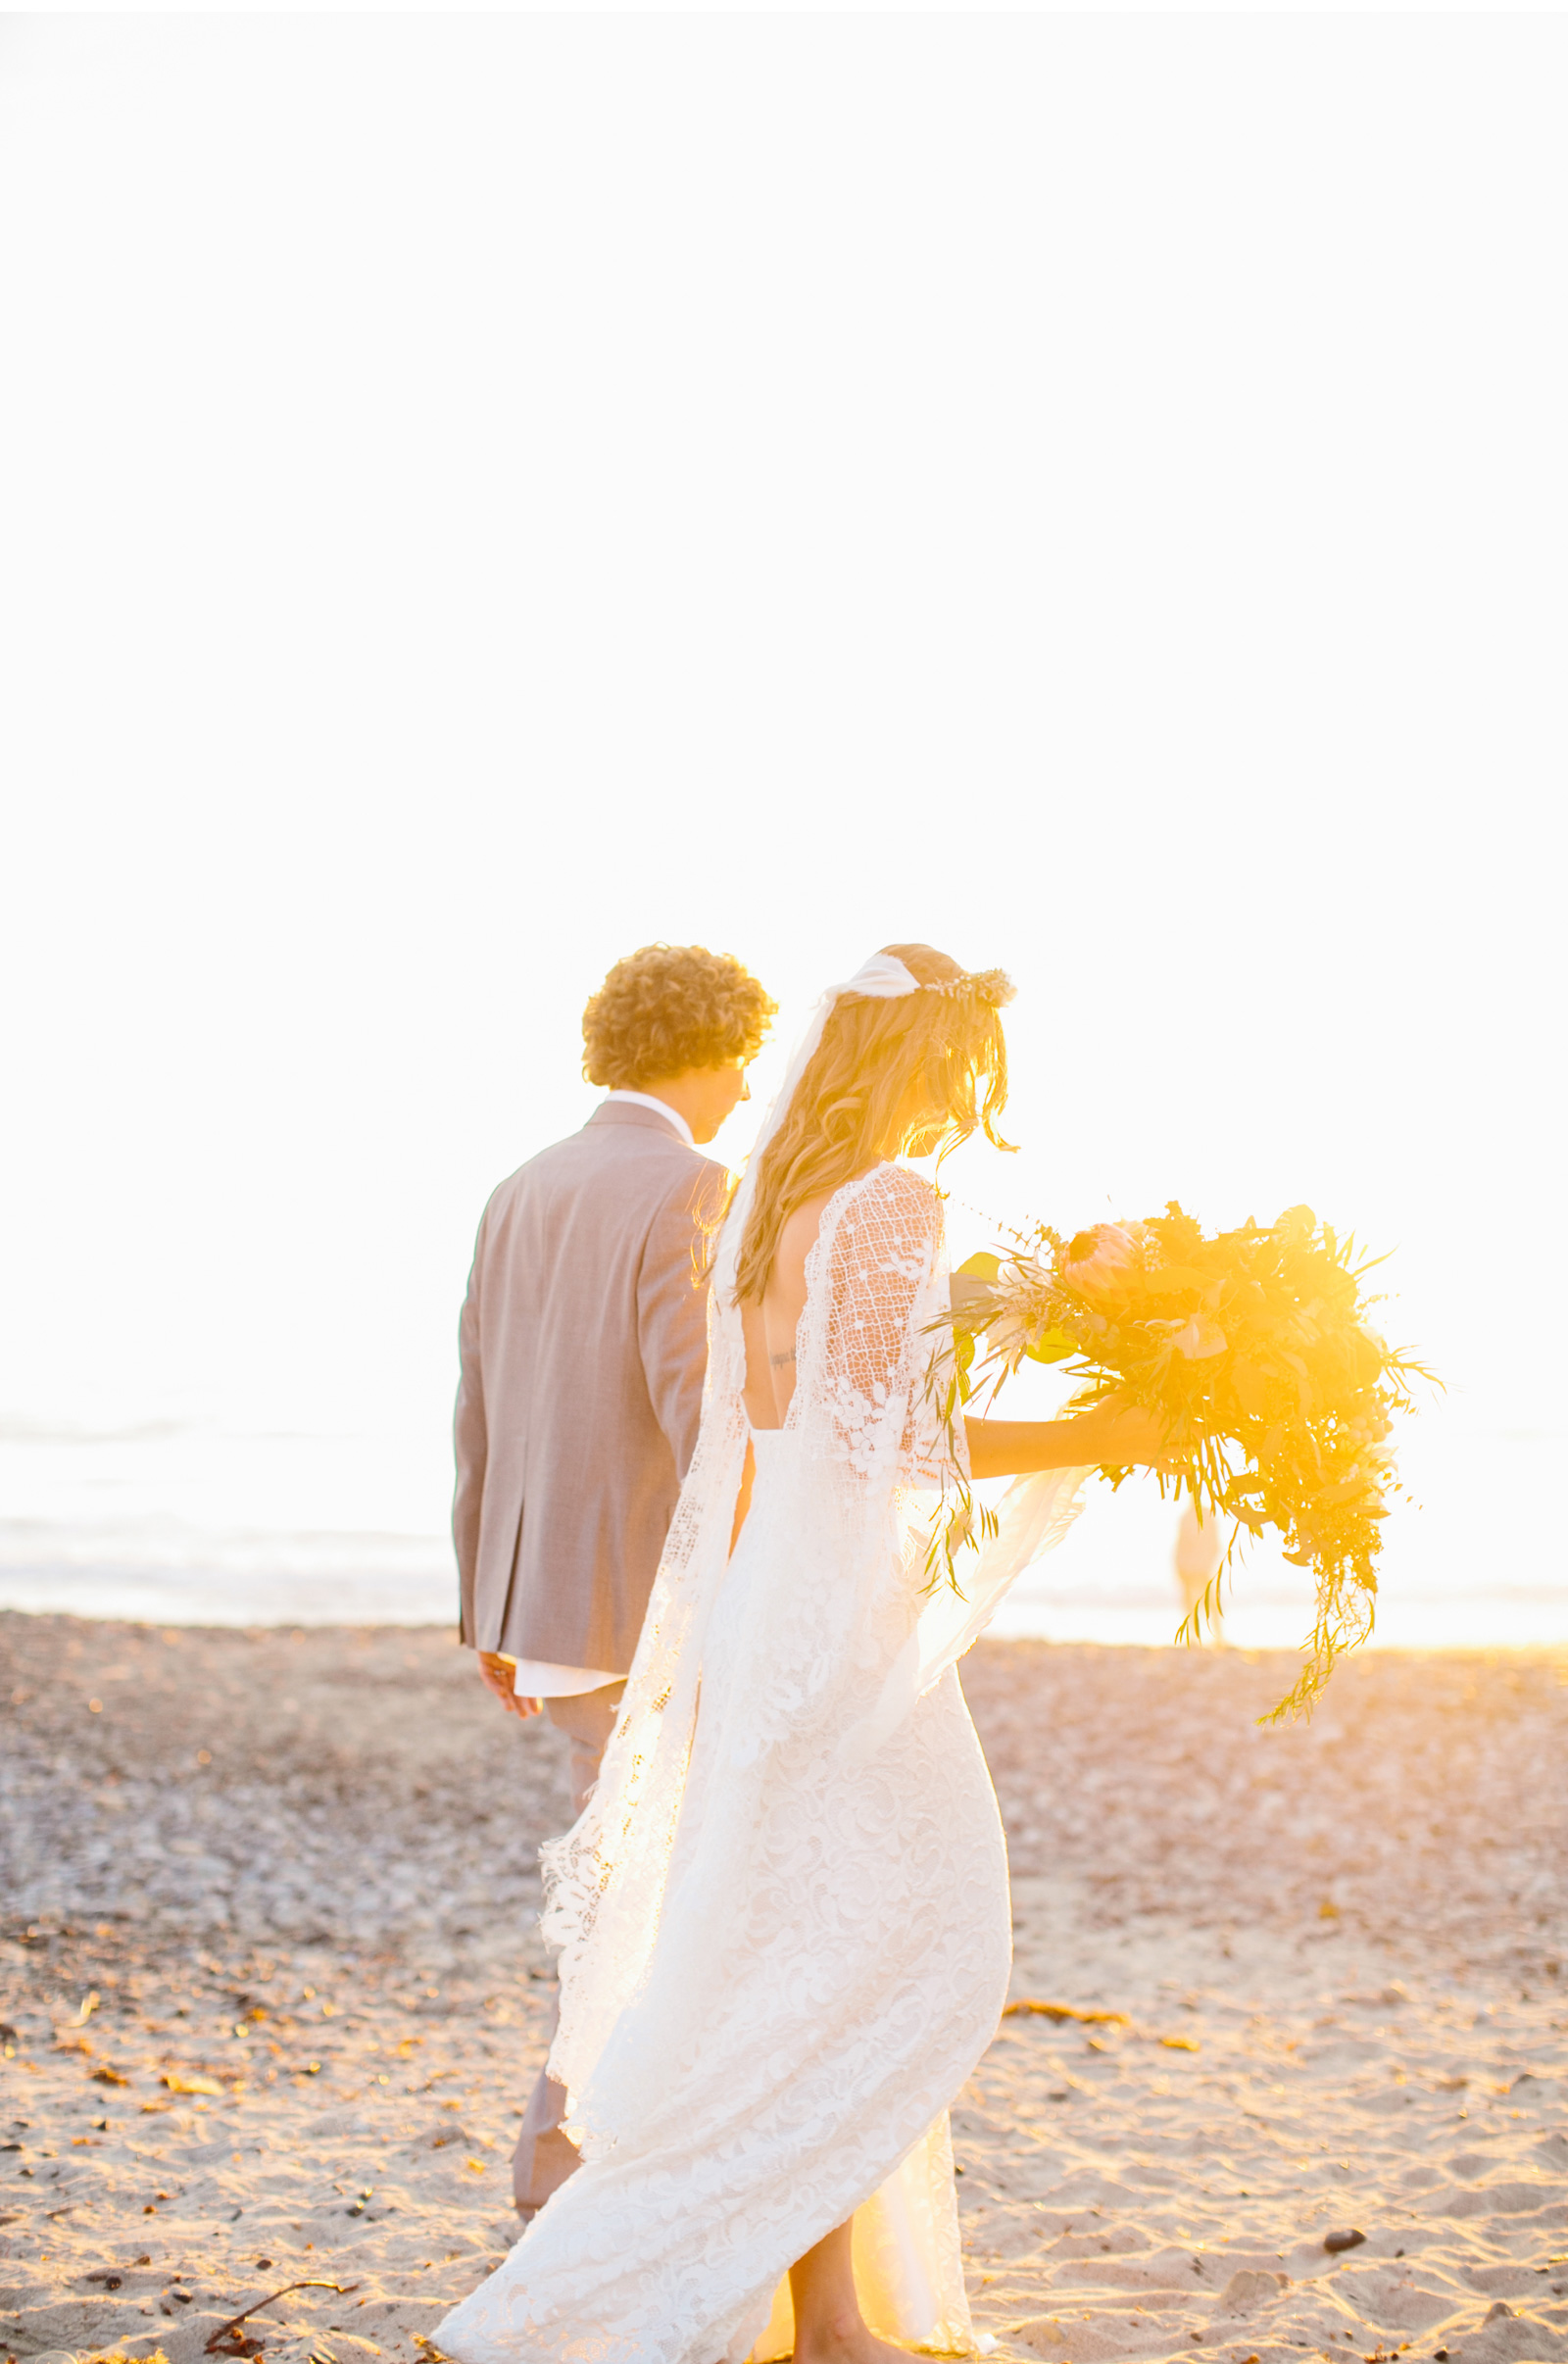 San-Clemente-Wedding-The-Casino-Natalie-Schutt-Photography_15.jpg